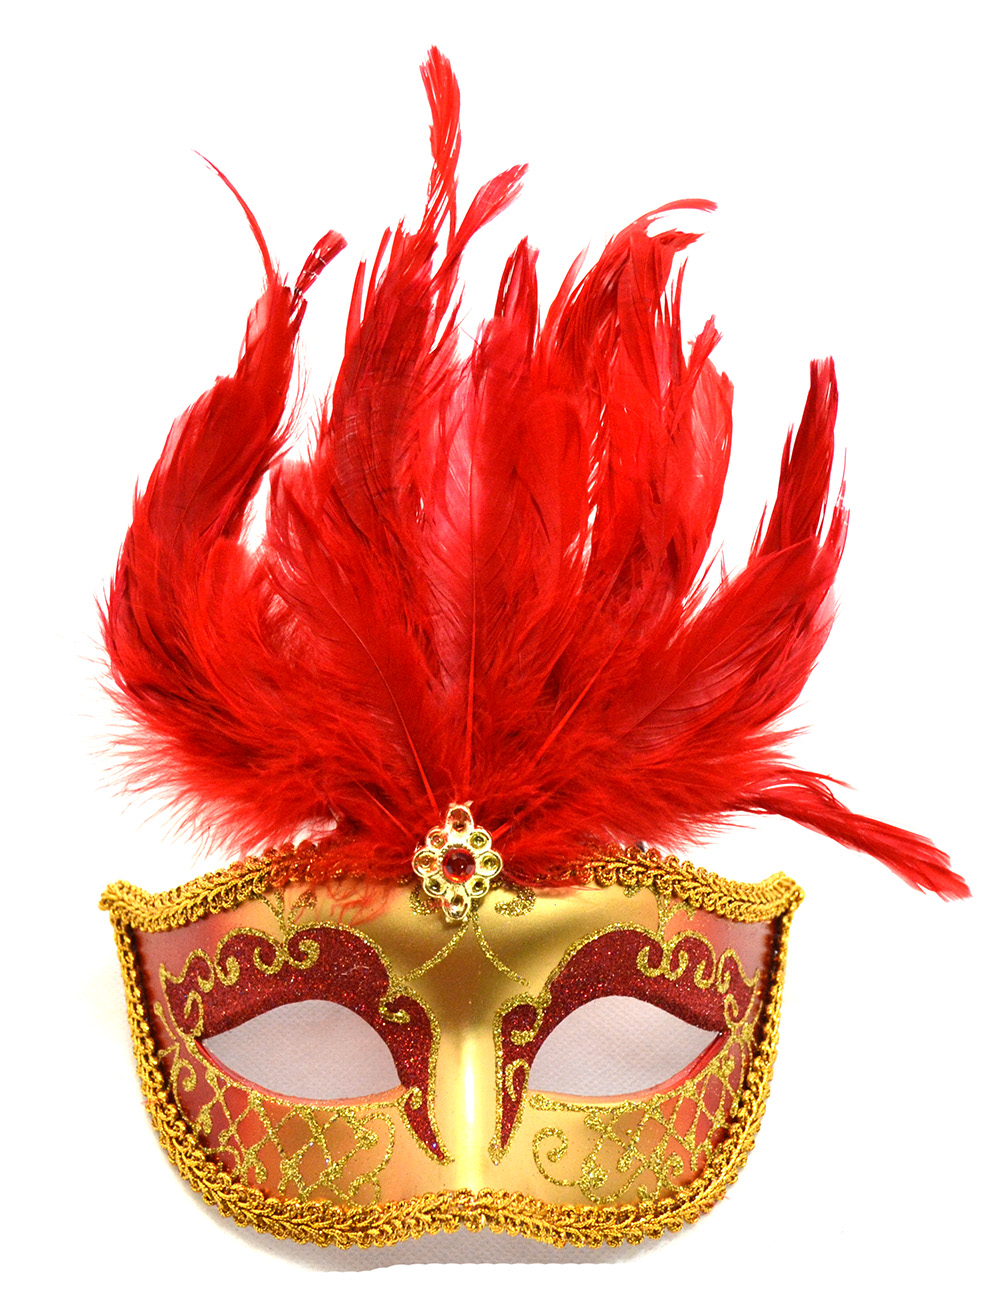 Venetian Red Mask with Short Feathers by K.B.W. Global Corp